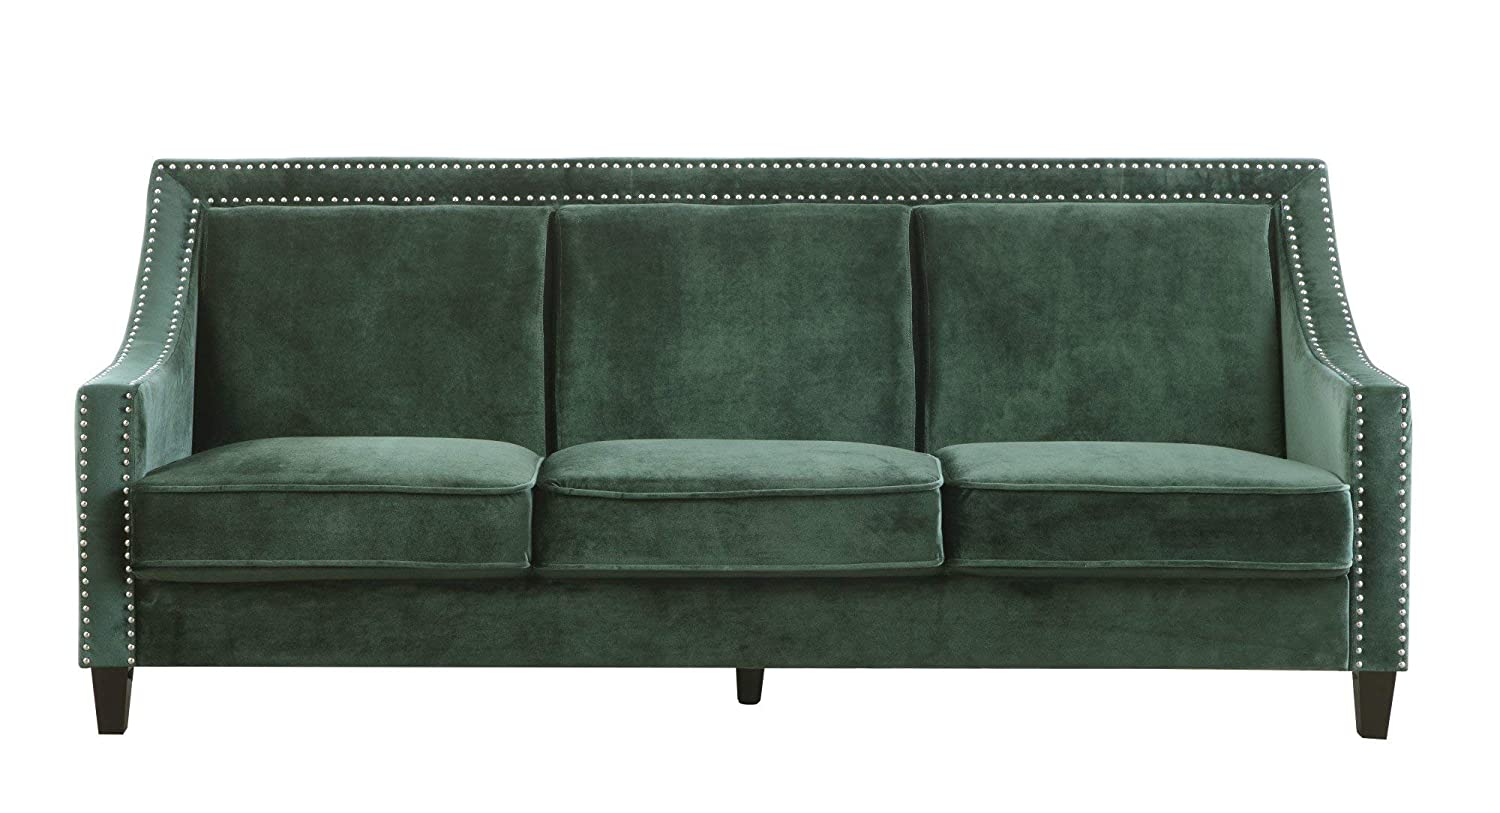 Iconic Home Camren Sofa Velvet Upholstered Swoop Arm Silver Nailhead Trim Espresso Finished Wood Legs Couch Modern Contemporary, Green